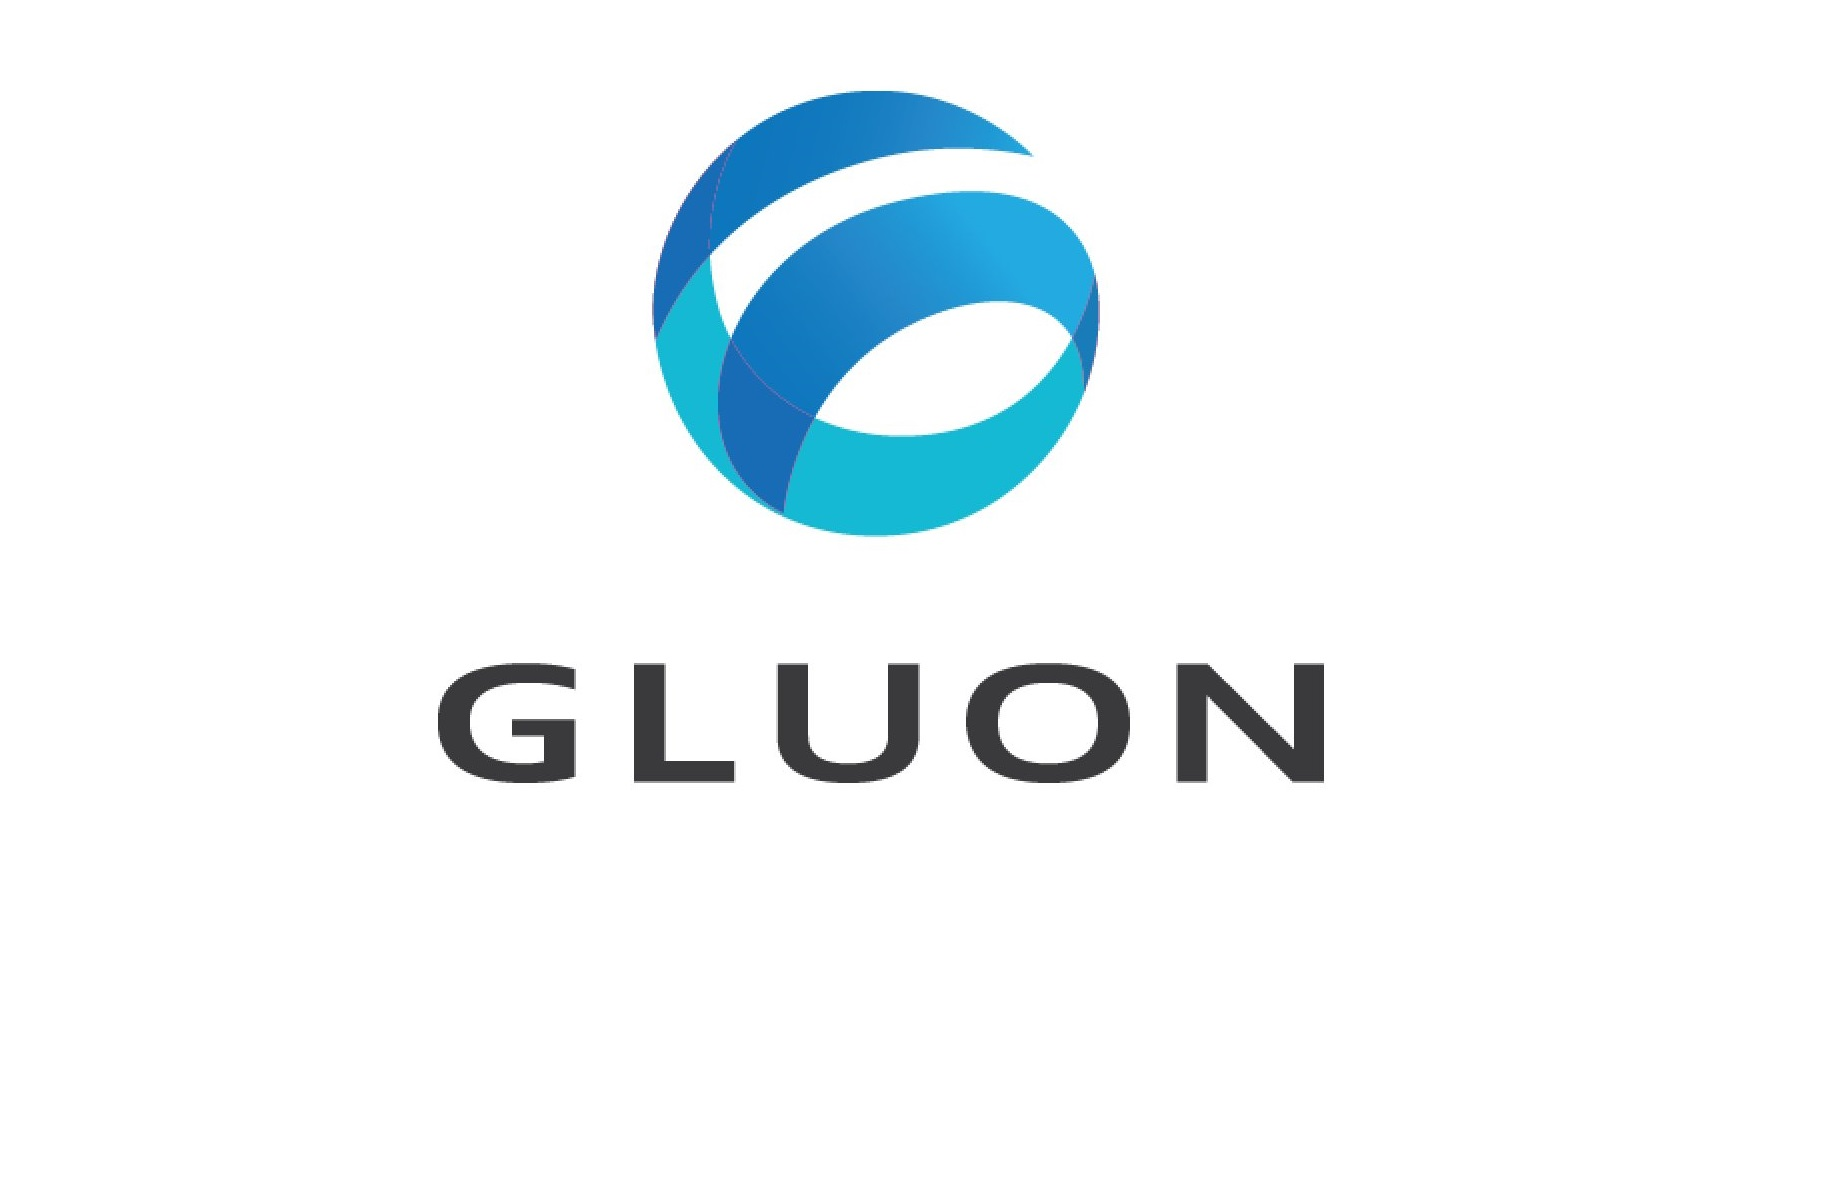 gluon-logo